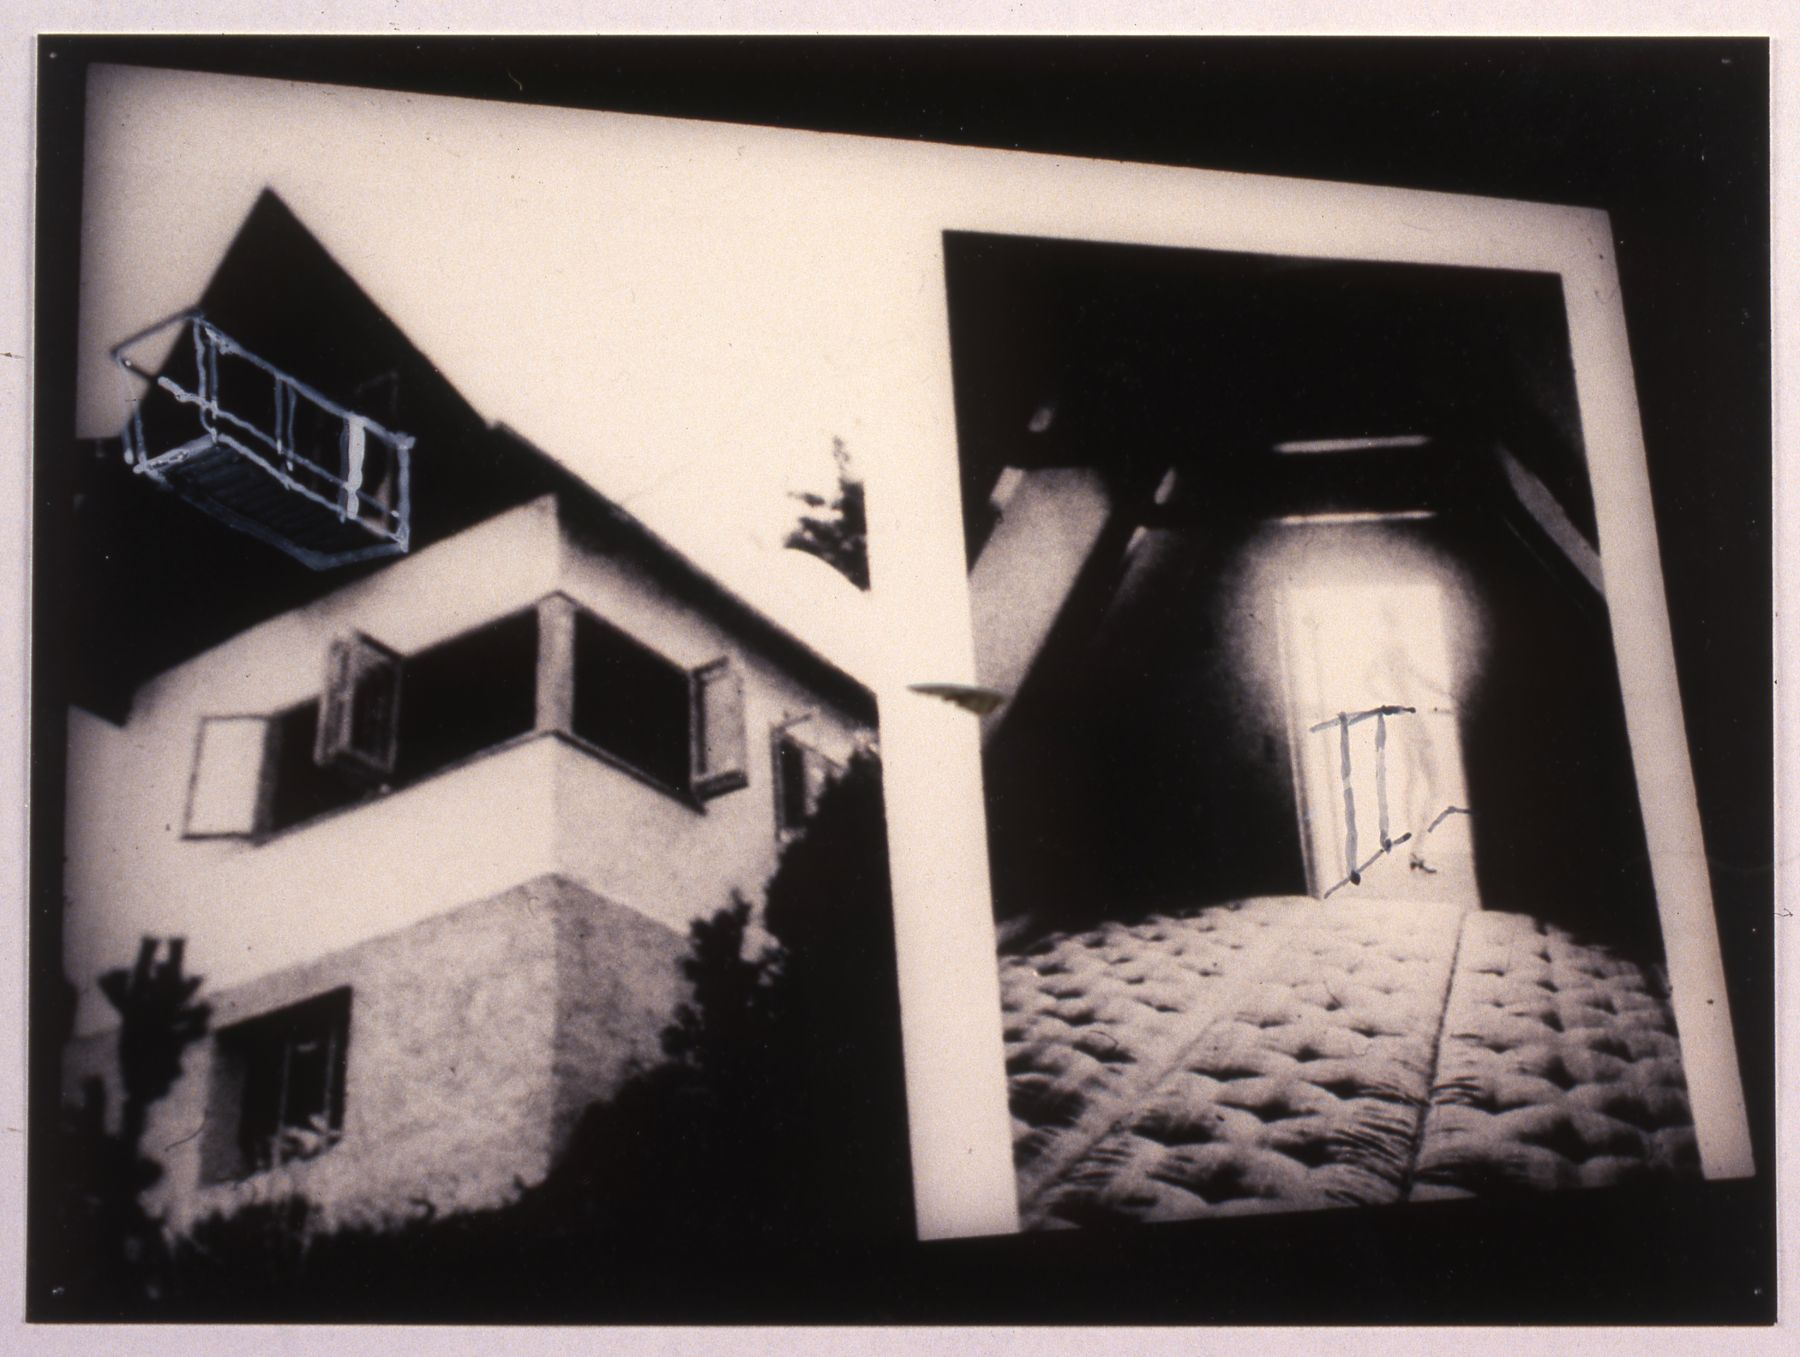 Josef Strau Nazis for Suburbia , 1999 original photograph/mixed media in glass frame  11.75 x 19.75 inches 29.8 x 50.2 cm